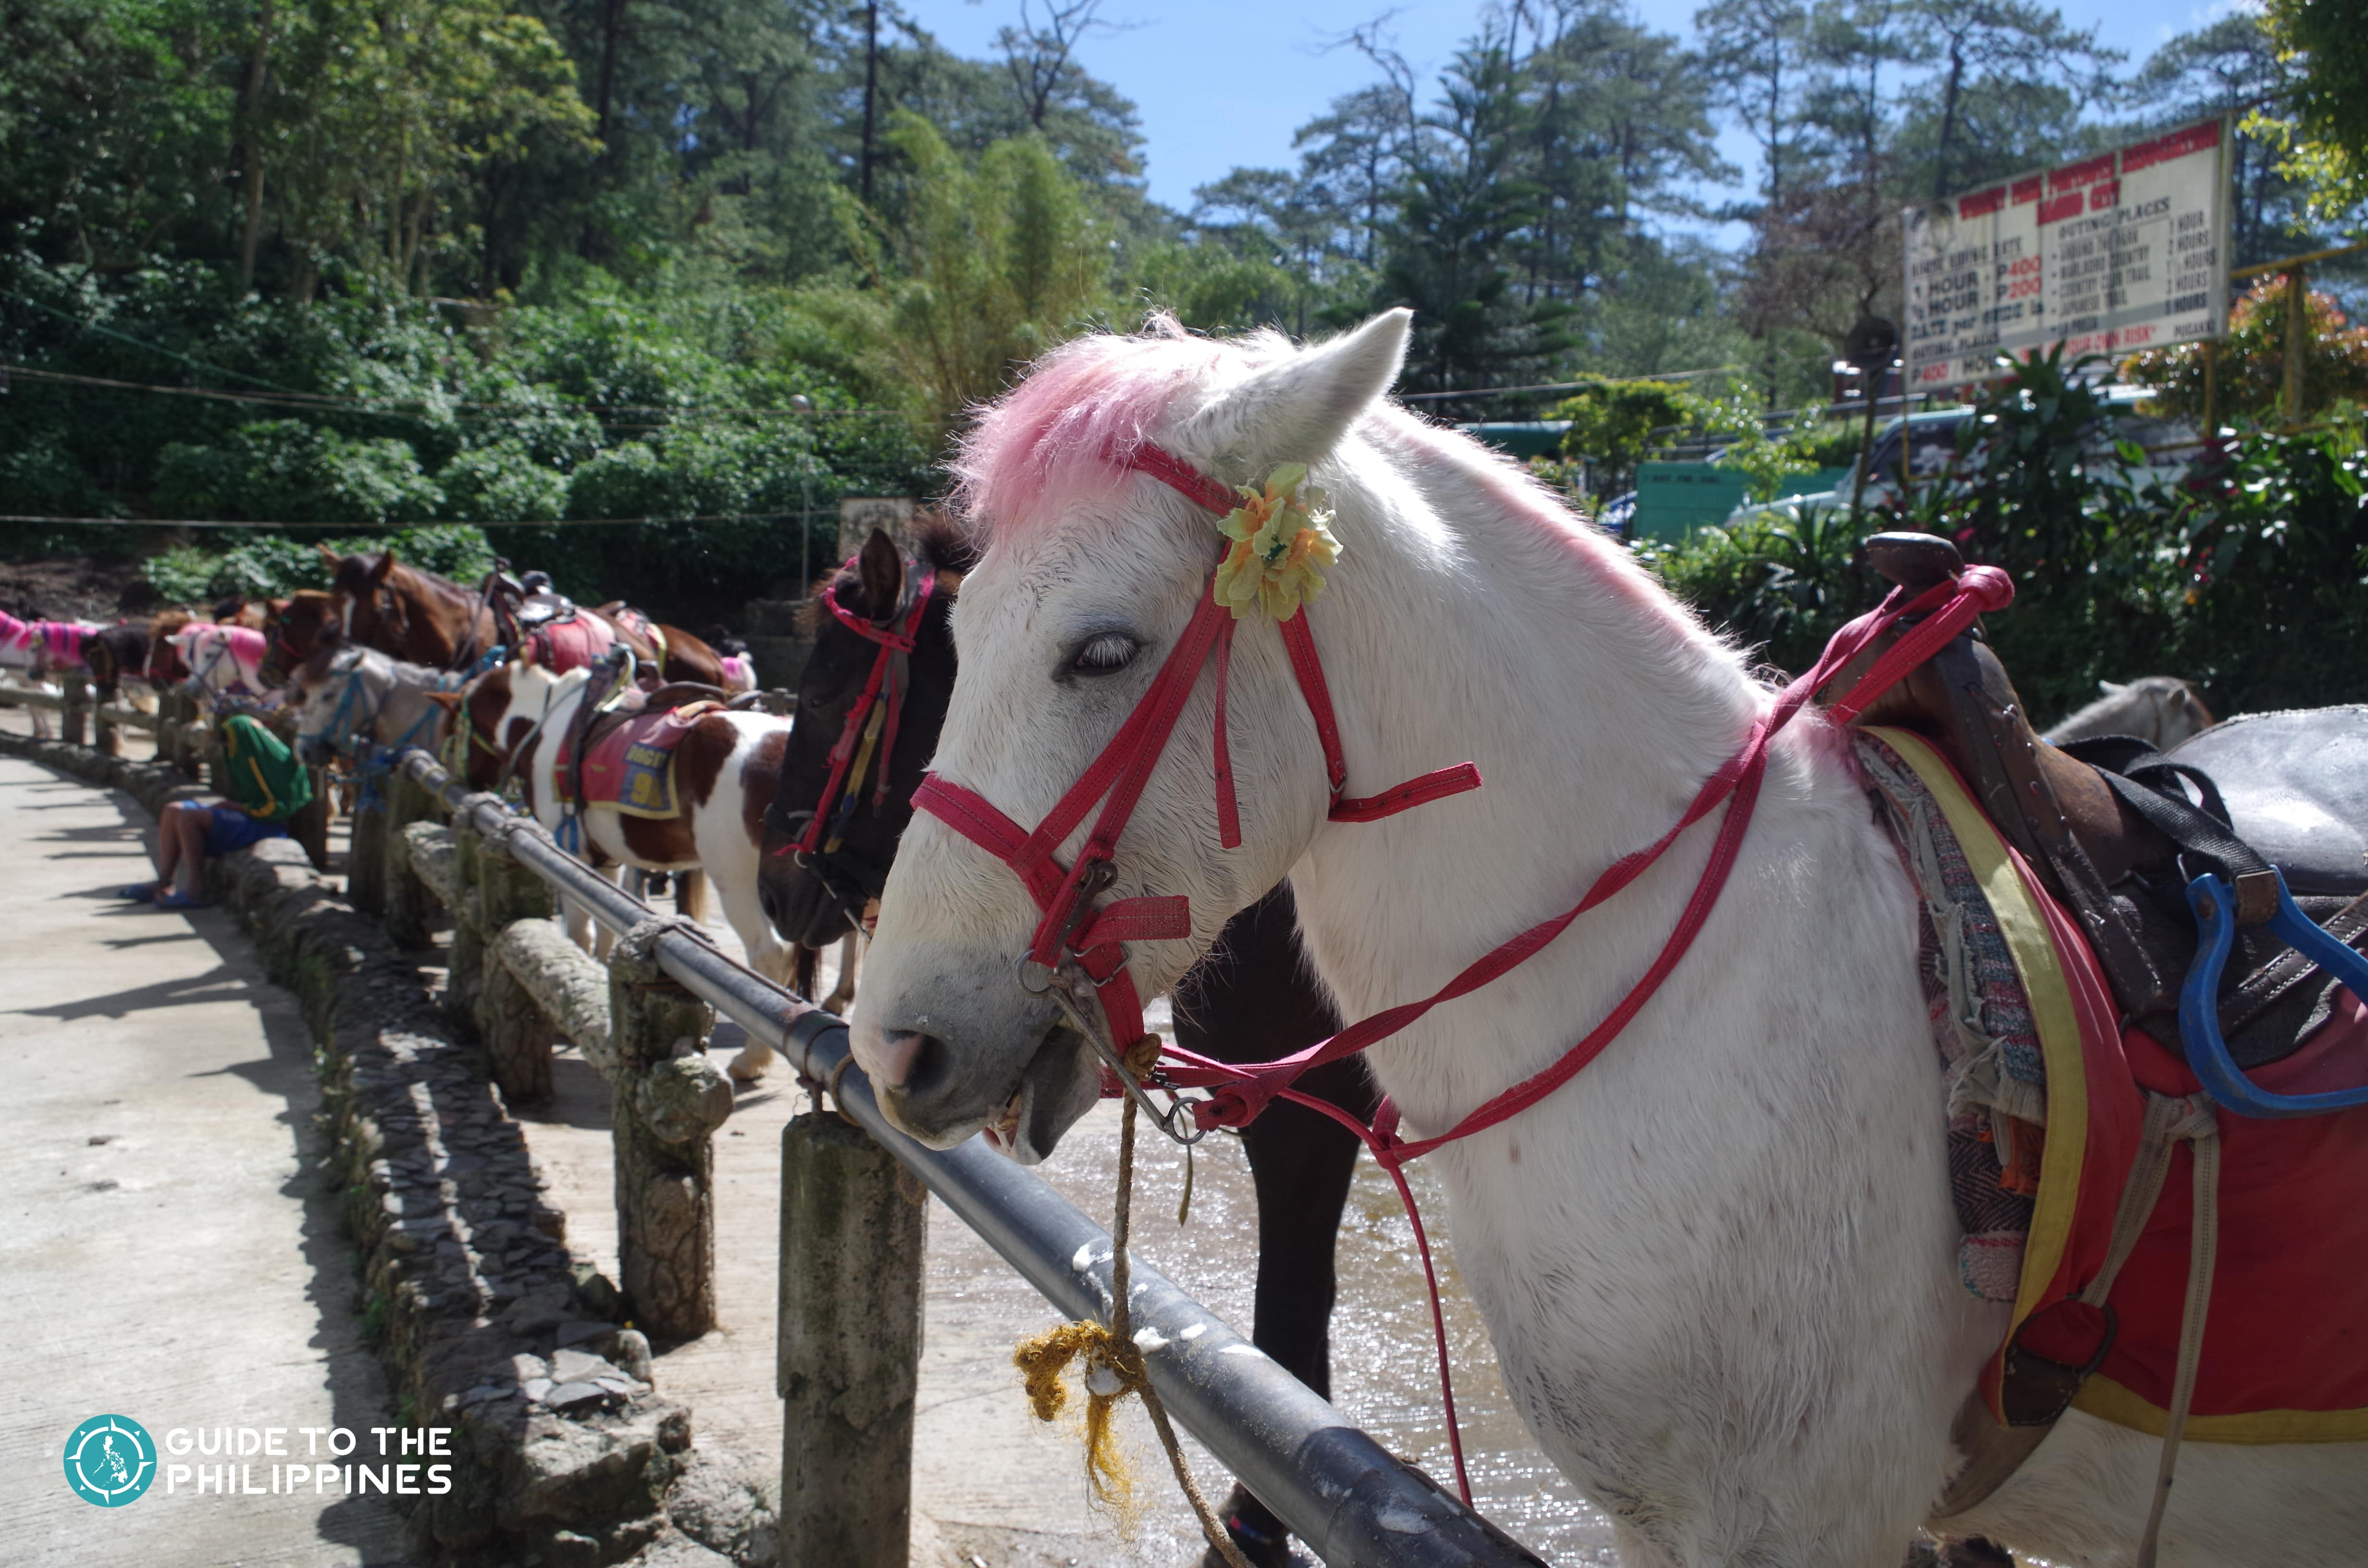 Horses at Wright Park in Baguio City